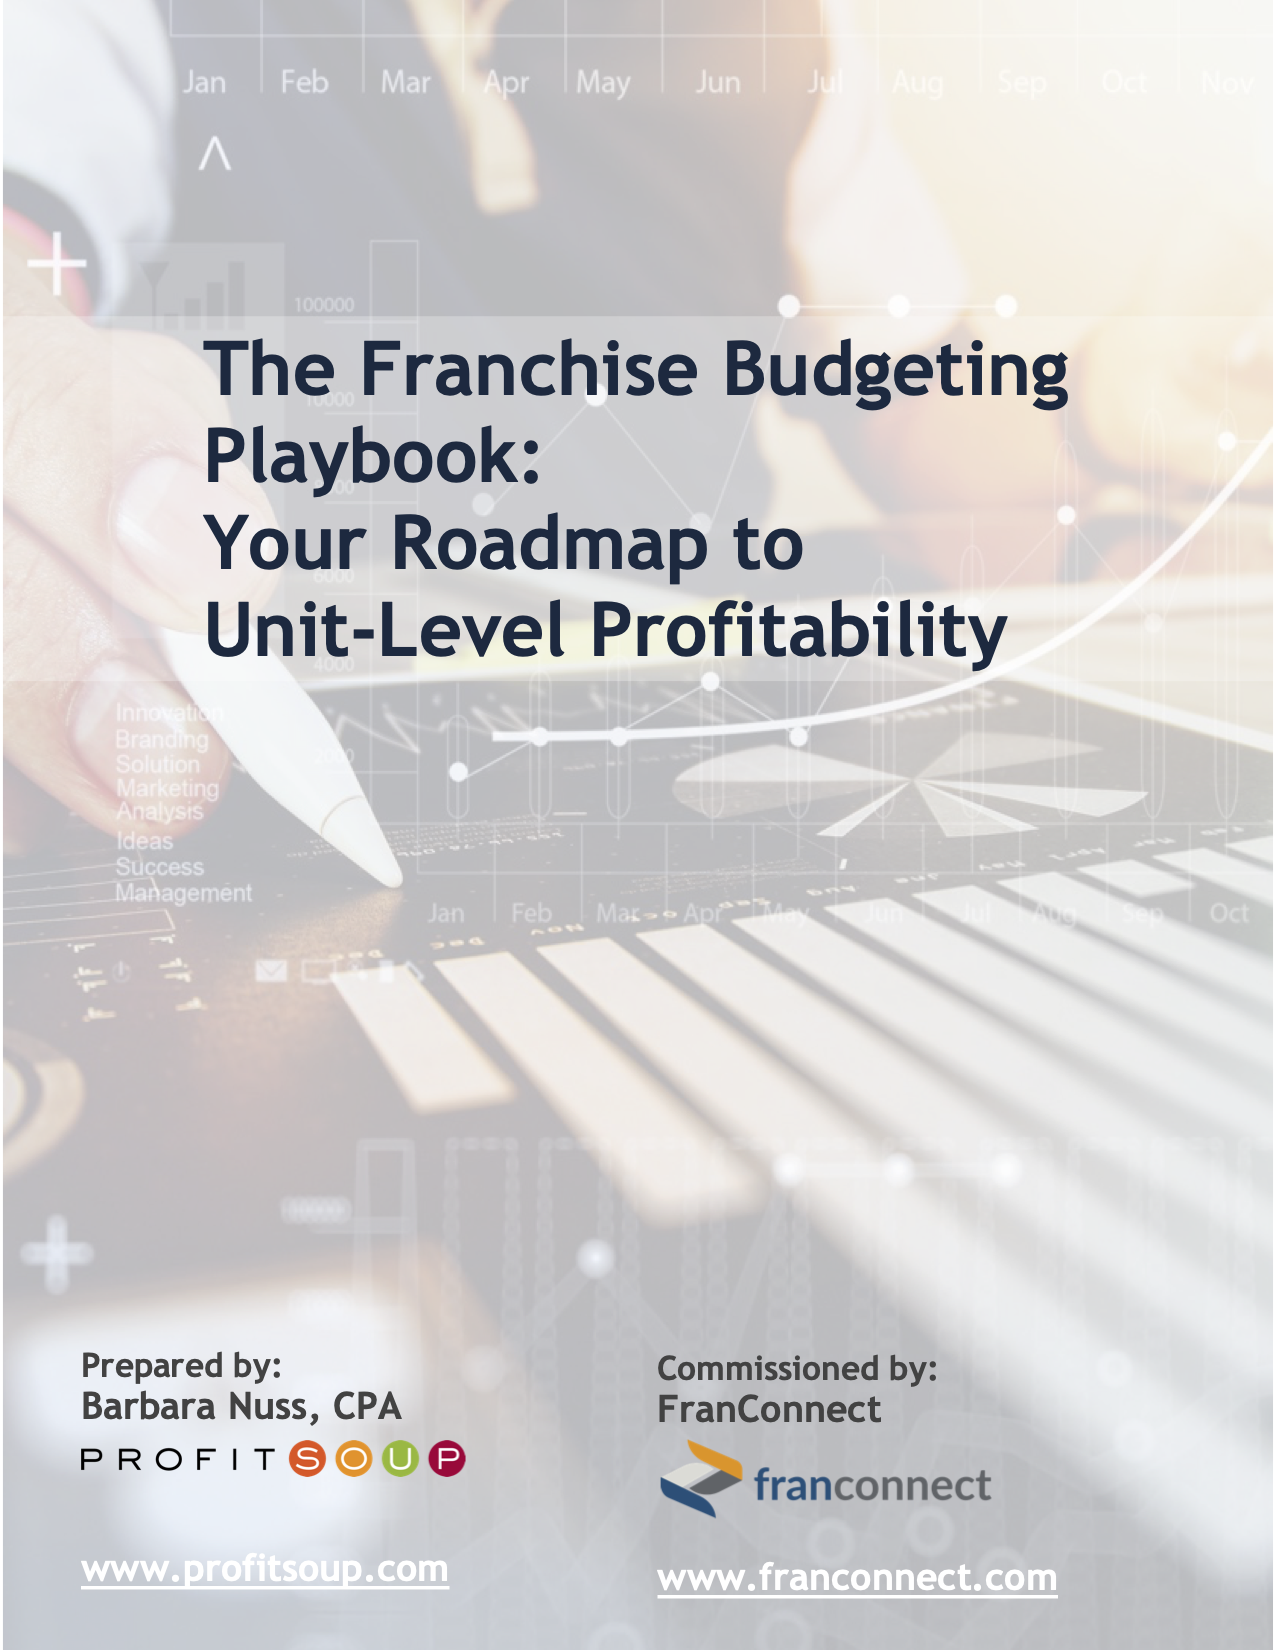 The Franchise Budgeting Playbook: Your Roadmap to Unit-Level Profitability Cover